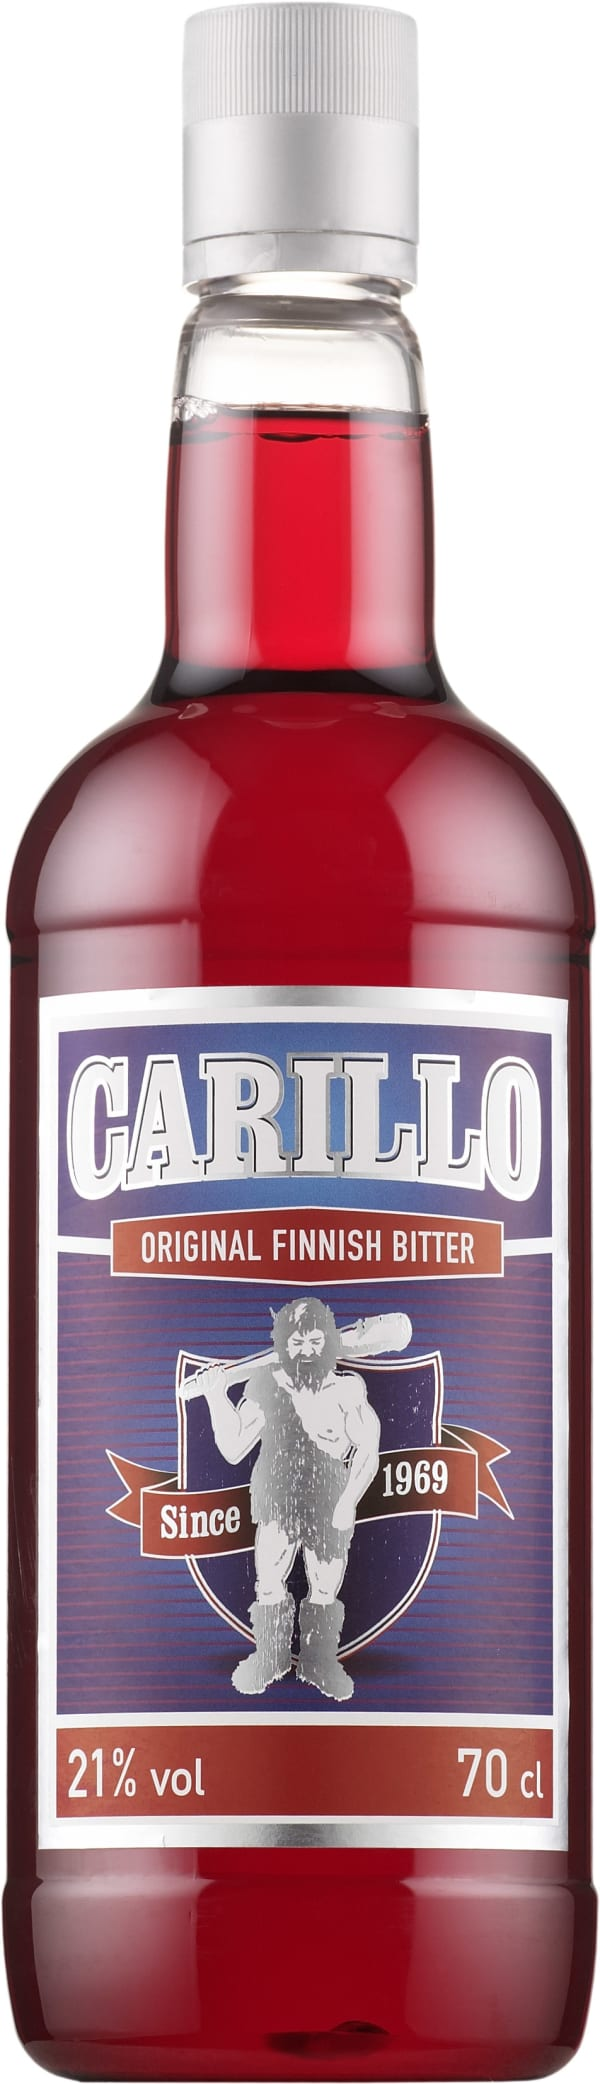 Carillo  plastic bottle